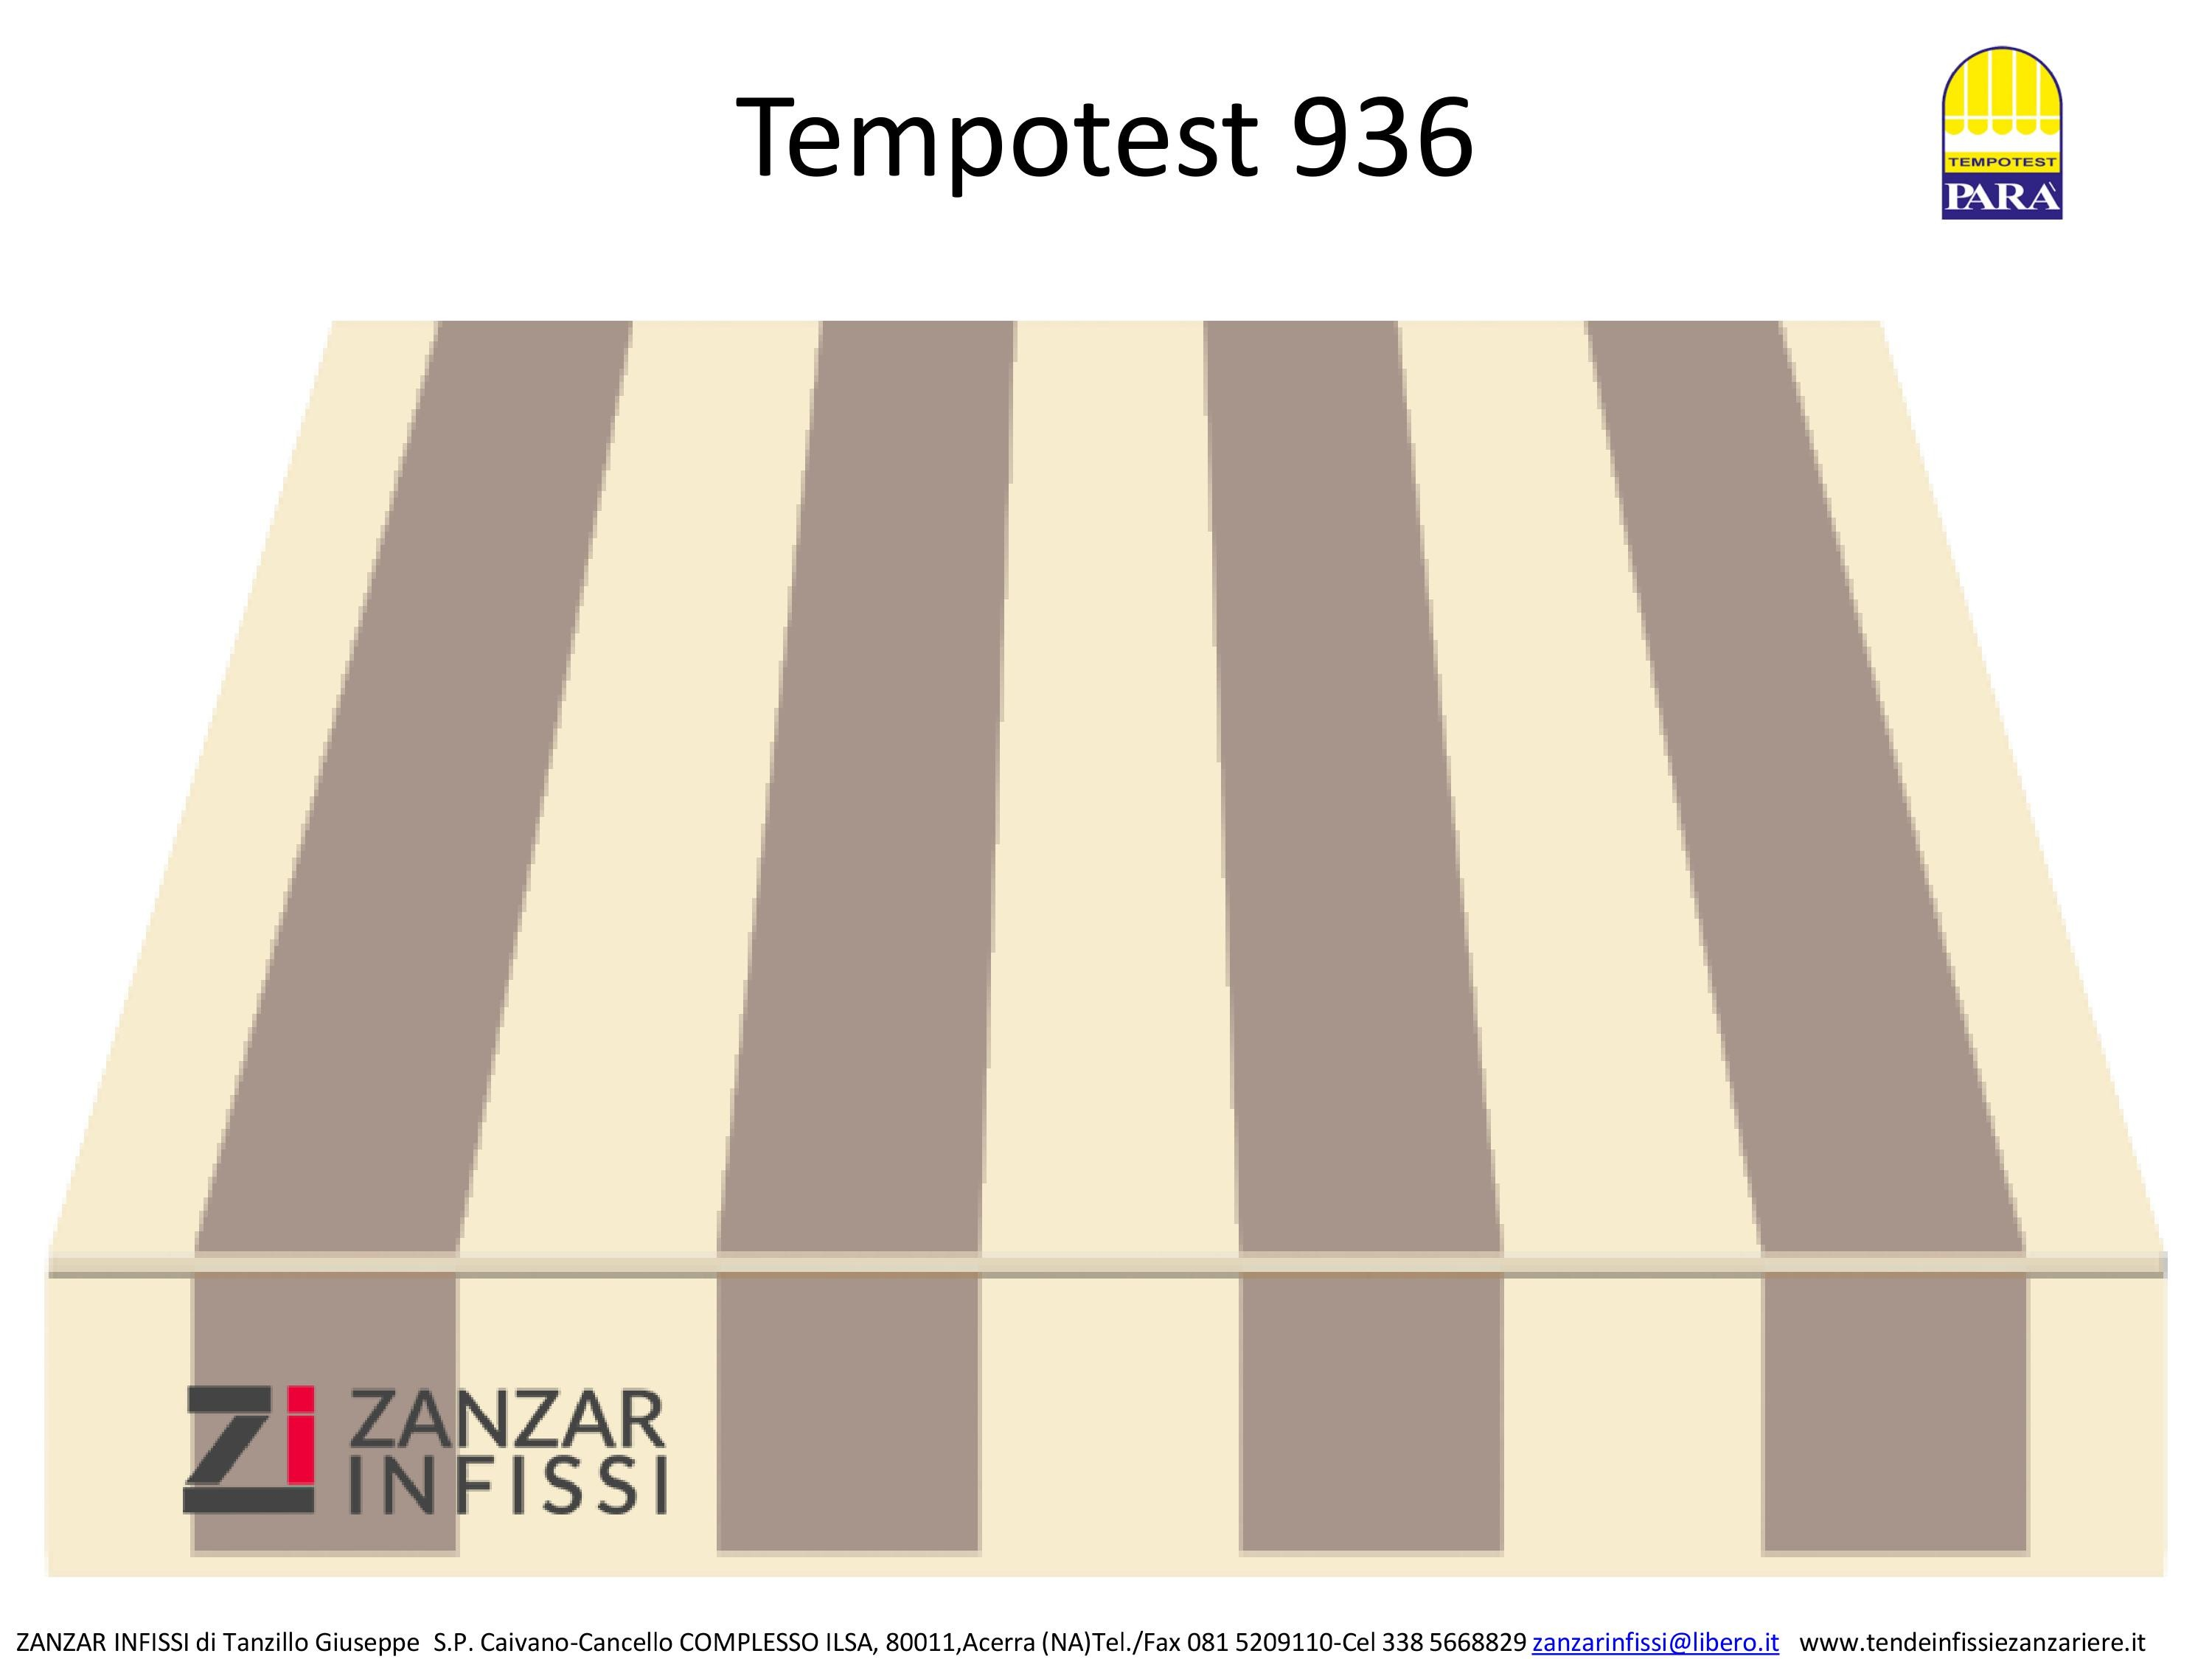 Tempotest 936